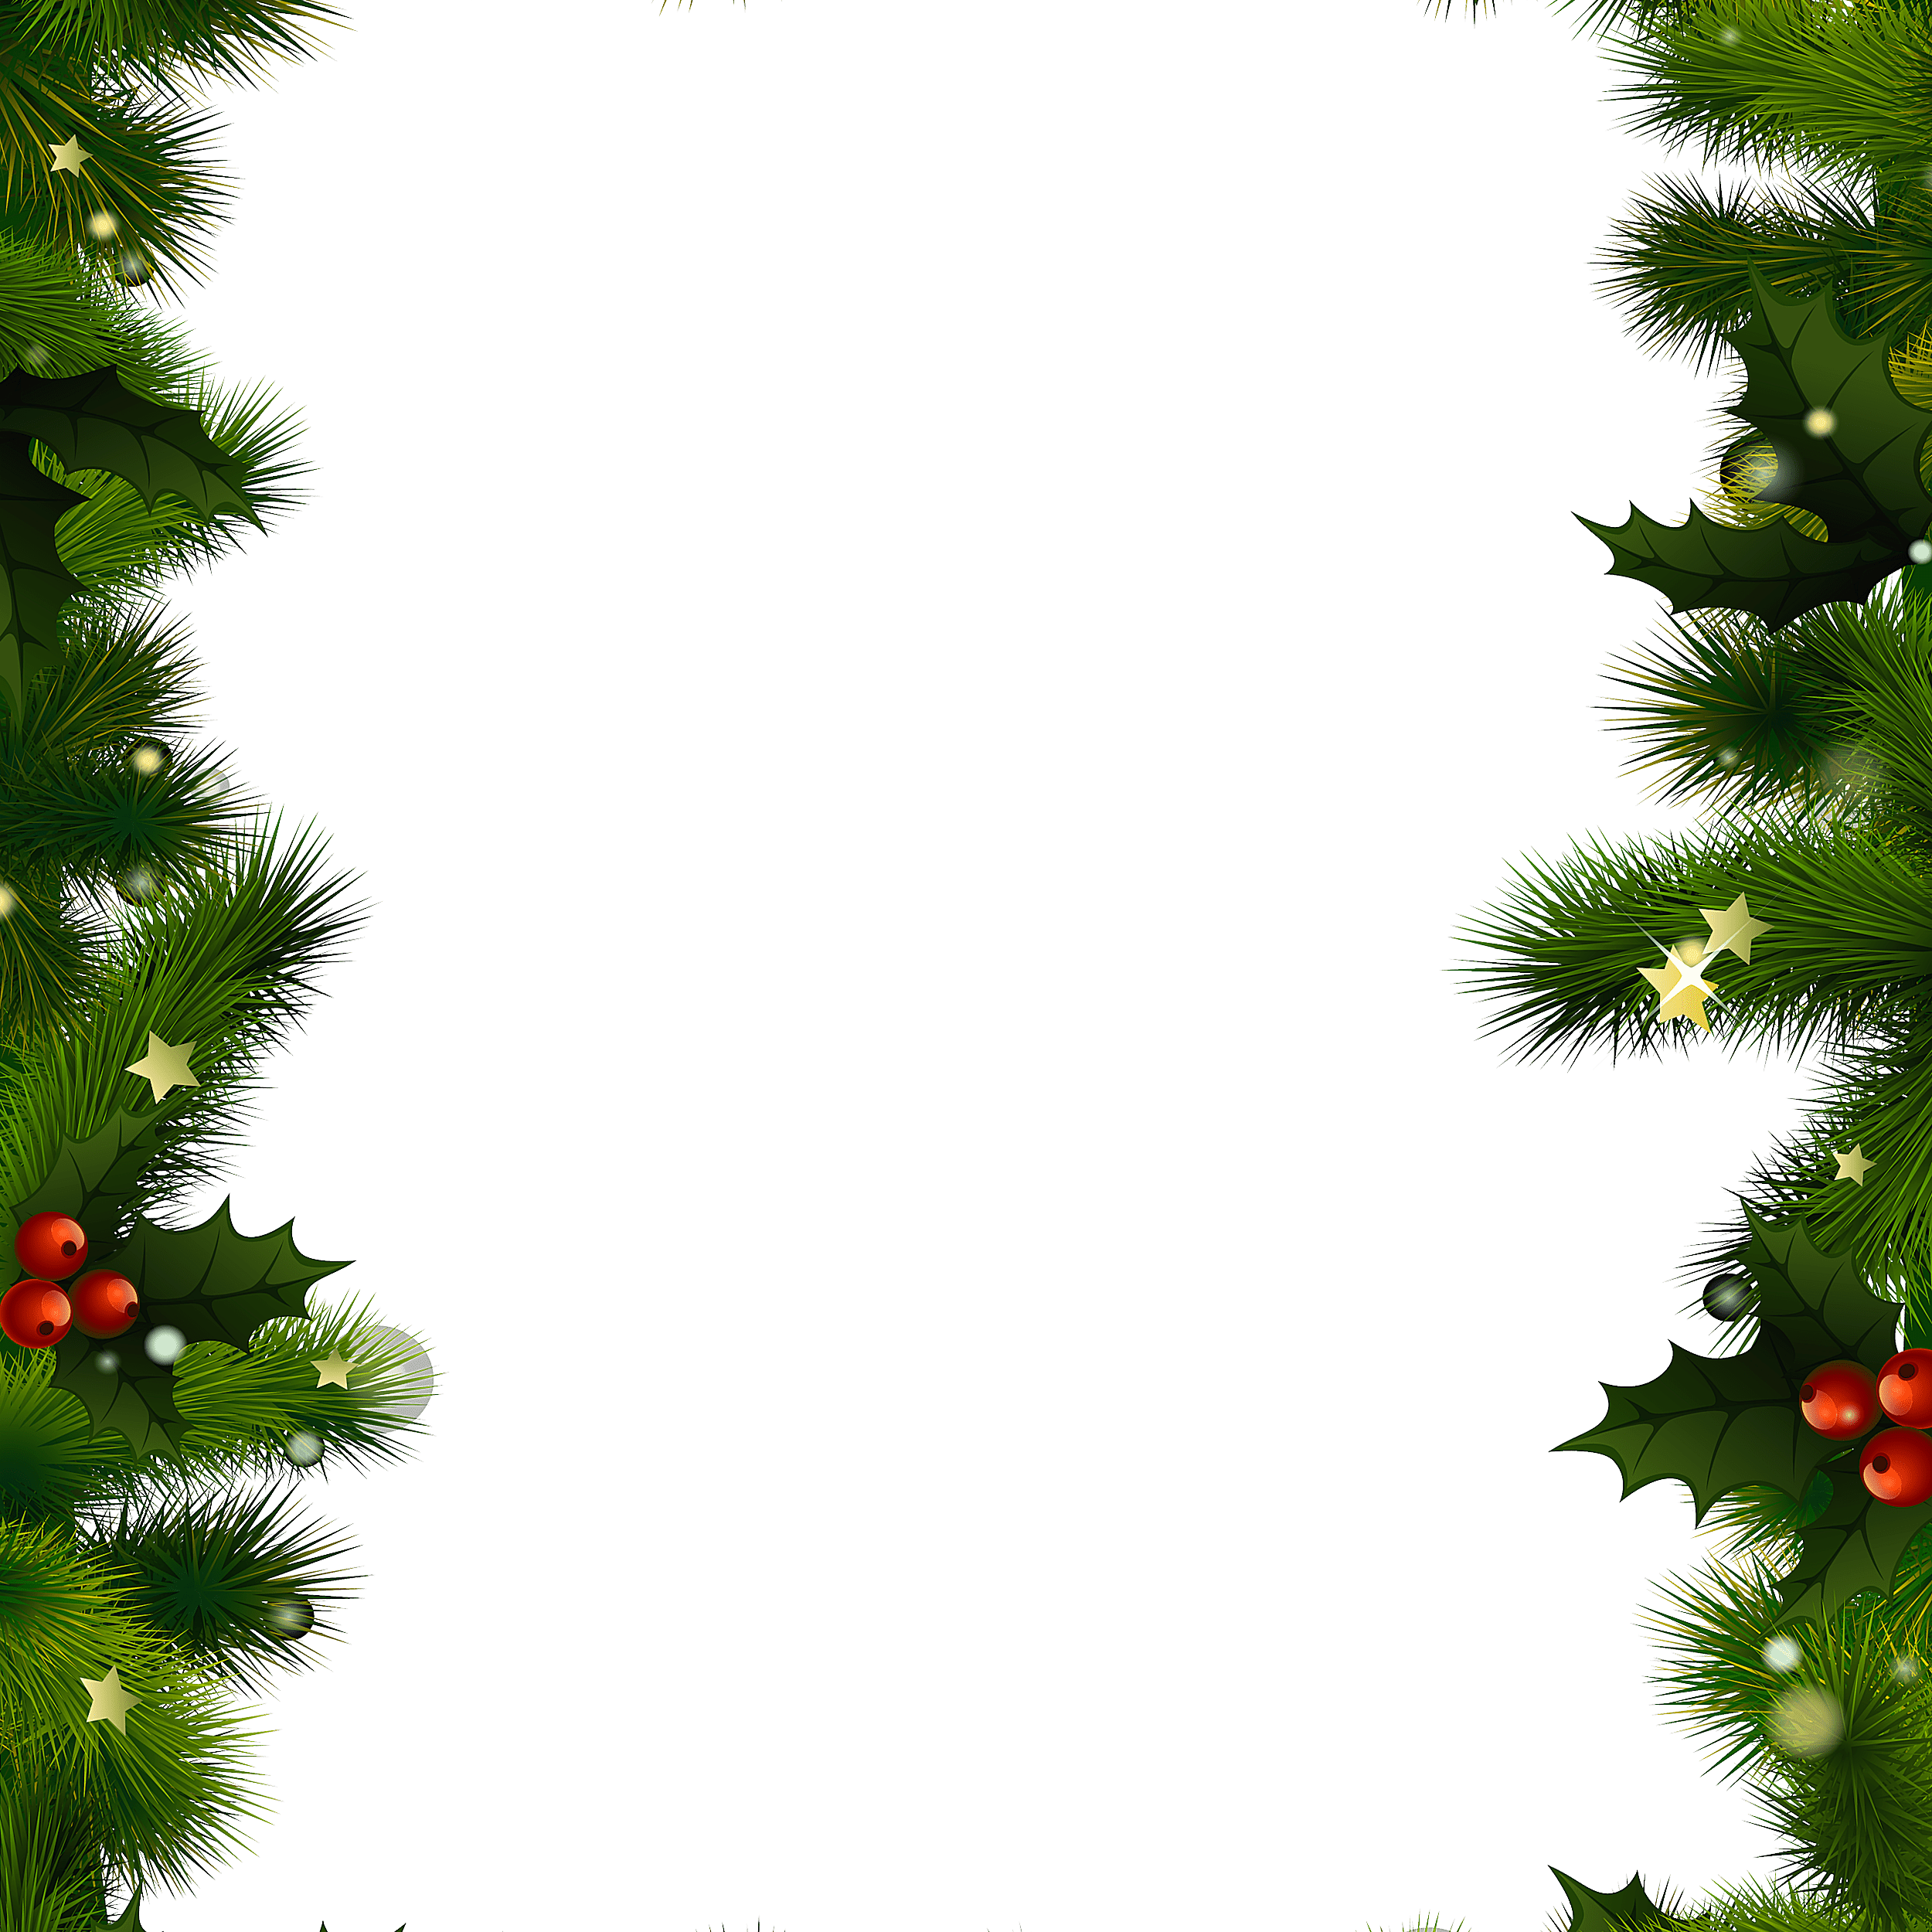 clipart download The best and frames. Free christmas borders clipart